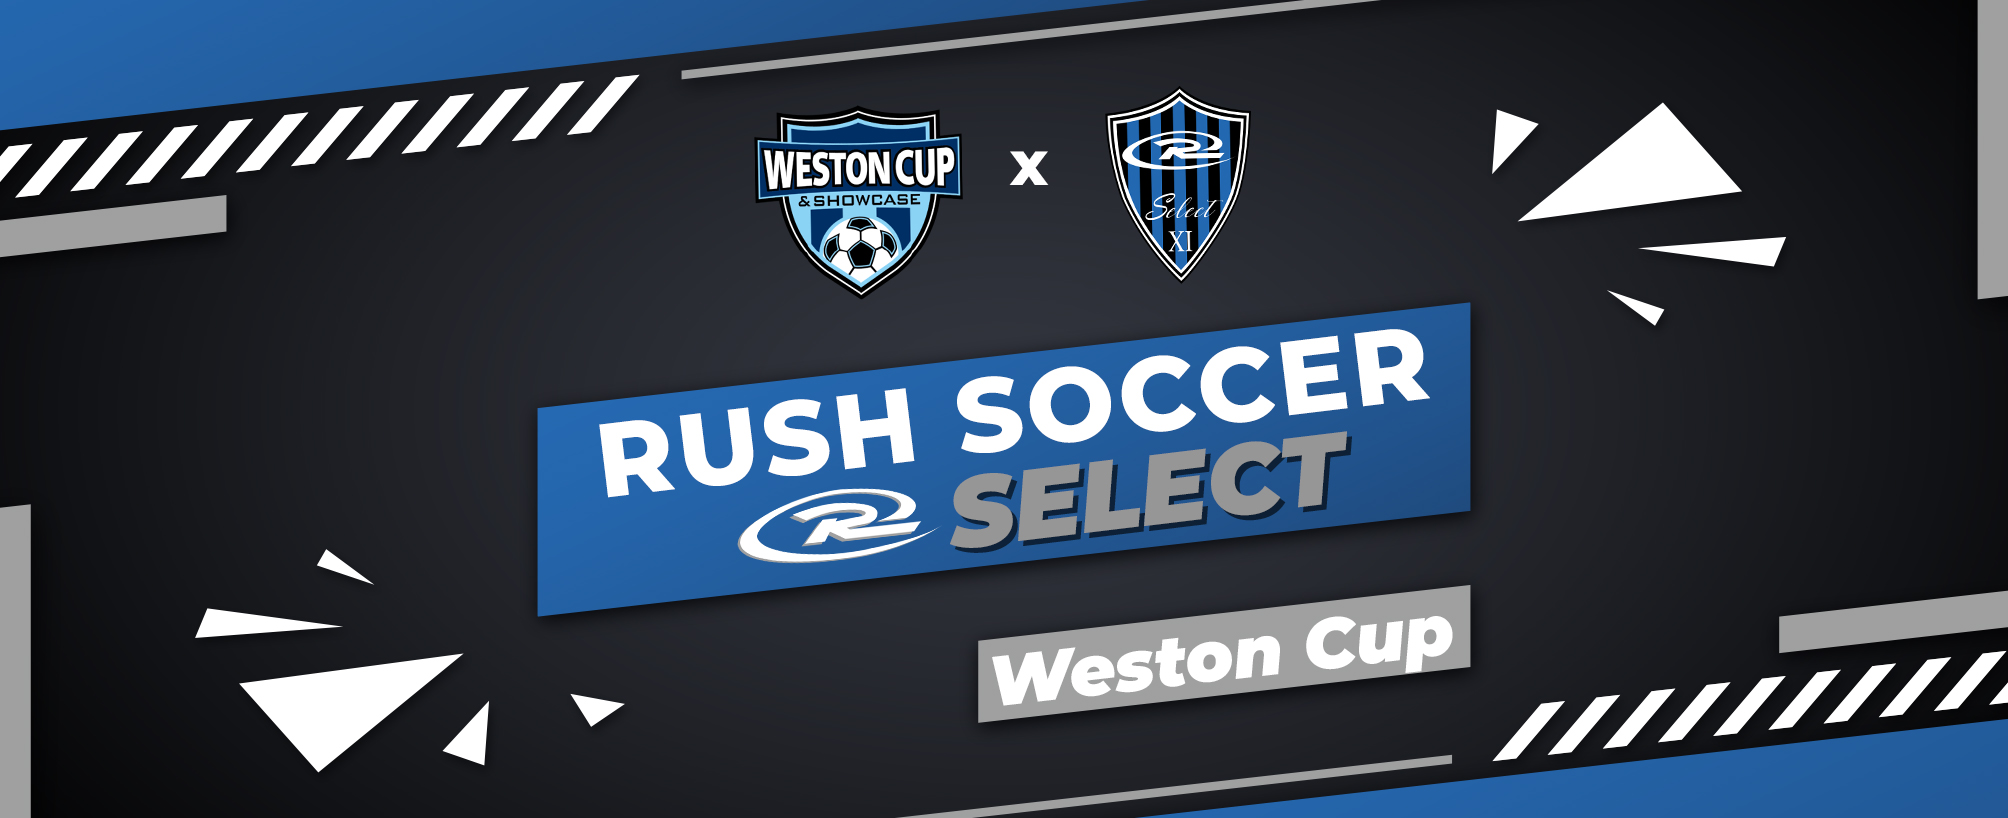 Rush-Select-PDT-Weston-Cup